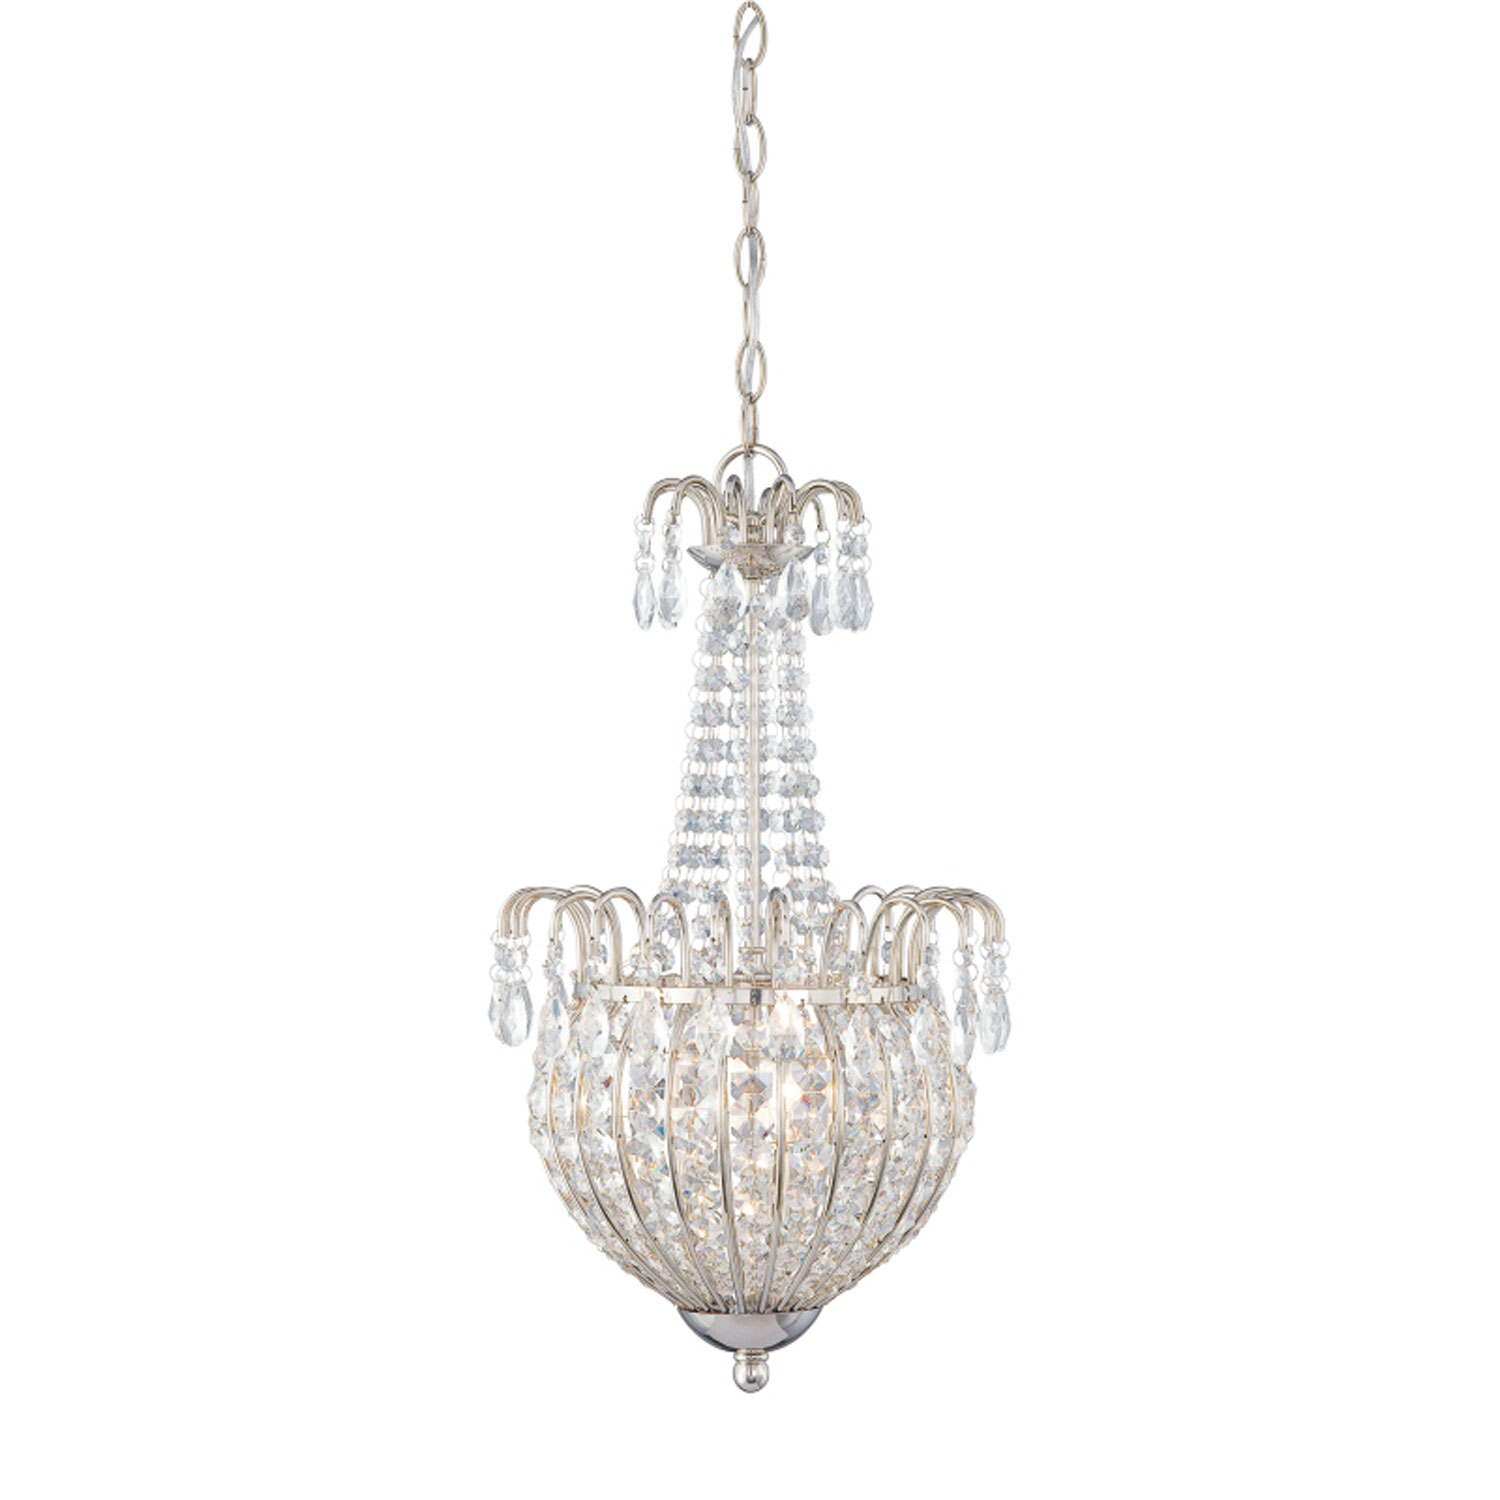 Choosing chandeliers for a traditional kitchen quoizel jolene chandelier in imperial silver finish best traditional chandelier arubaitofo Image collections